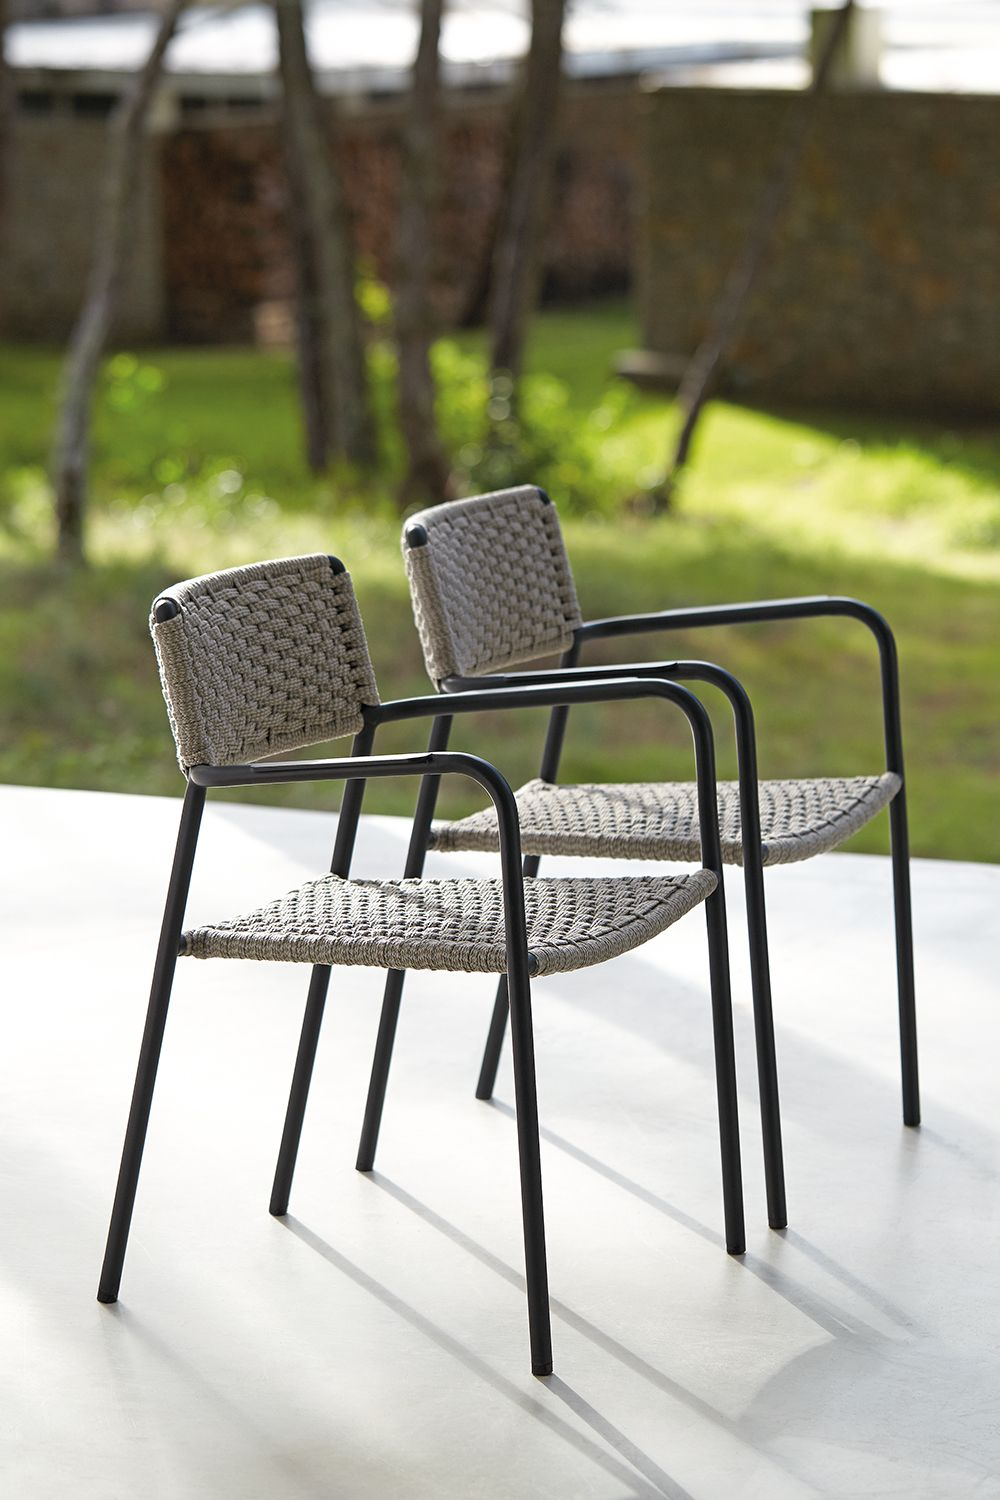 Outdoor dining chair by Manutti. Stackable, light, soft, weather resistant, rope, powdercoated aluminium. Pool, terrace, garden furniture. Belgian design.